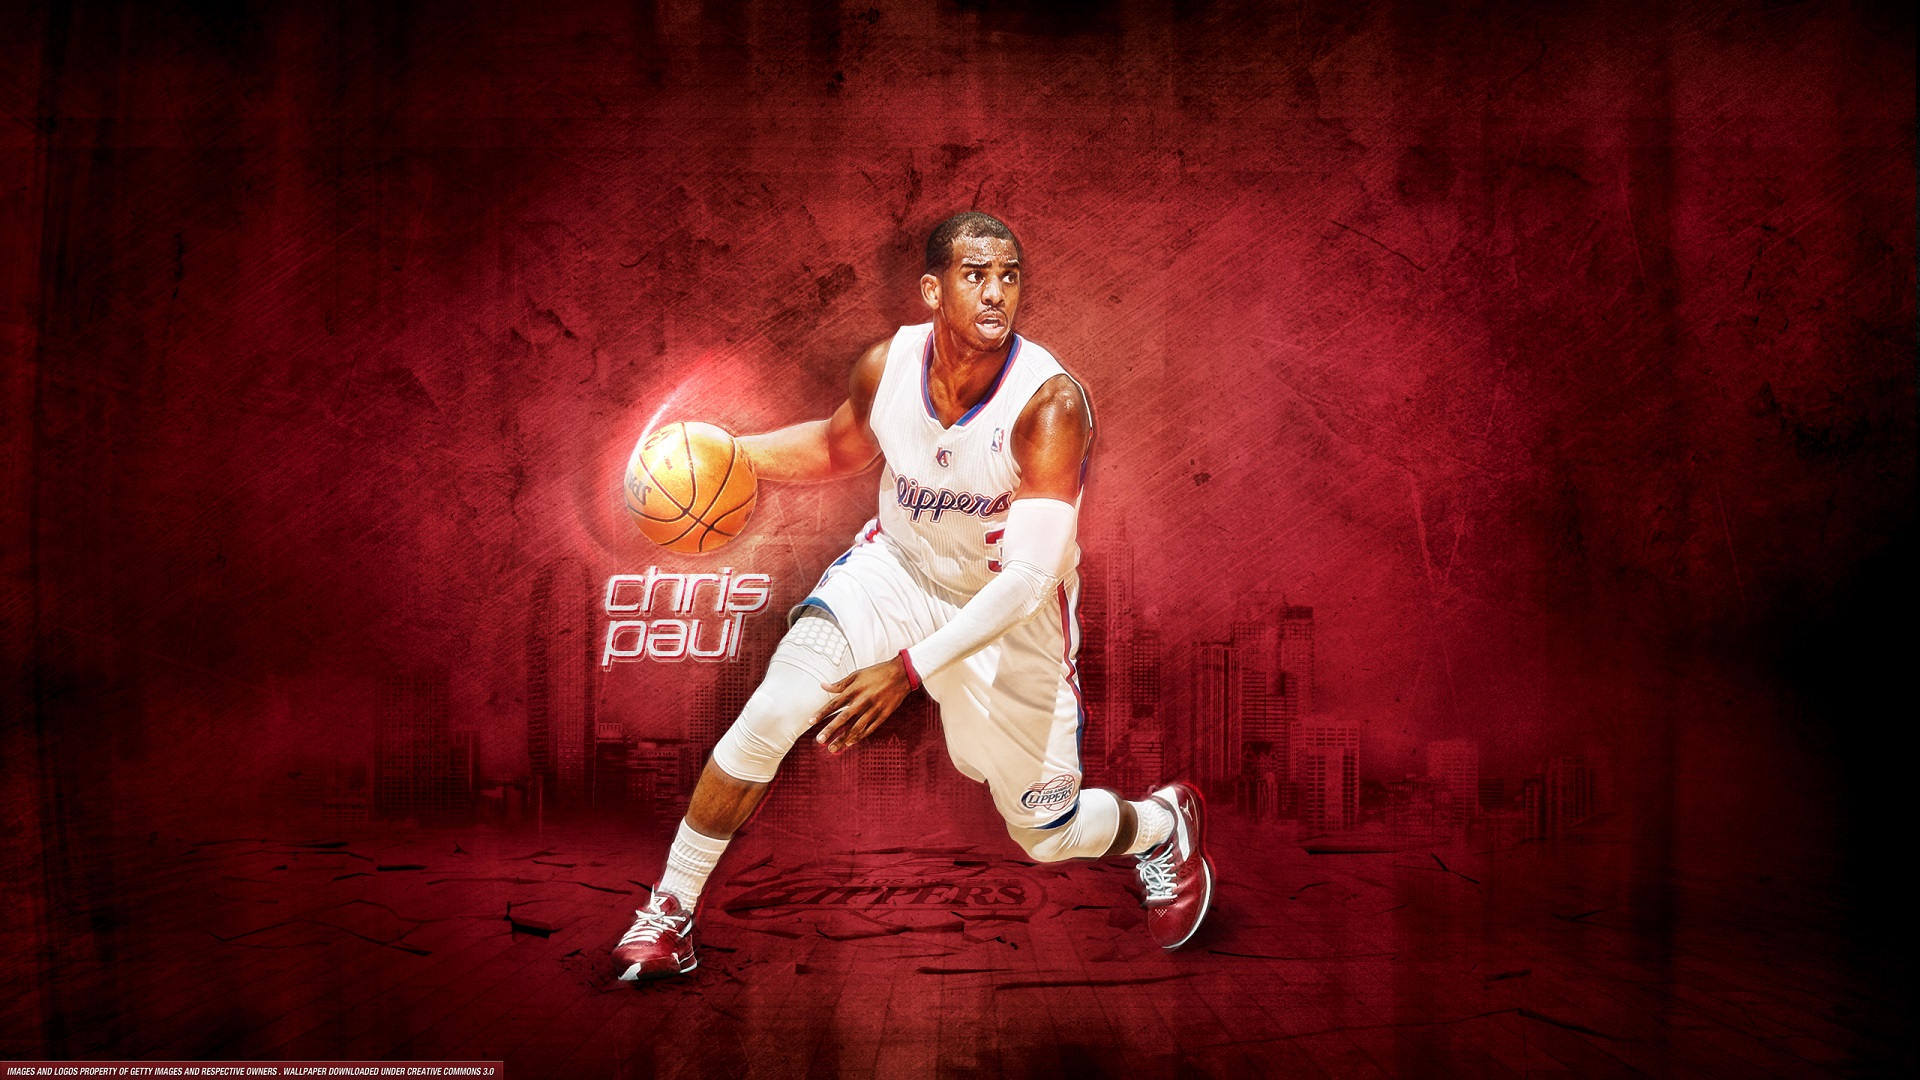 Chris Paul Wallpaper IPhone